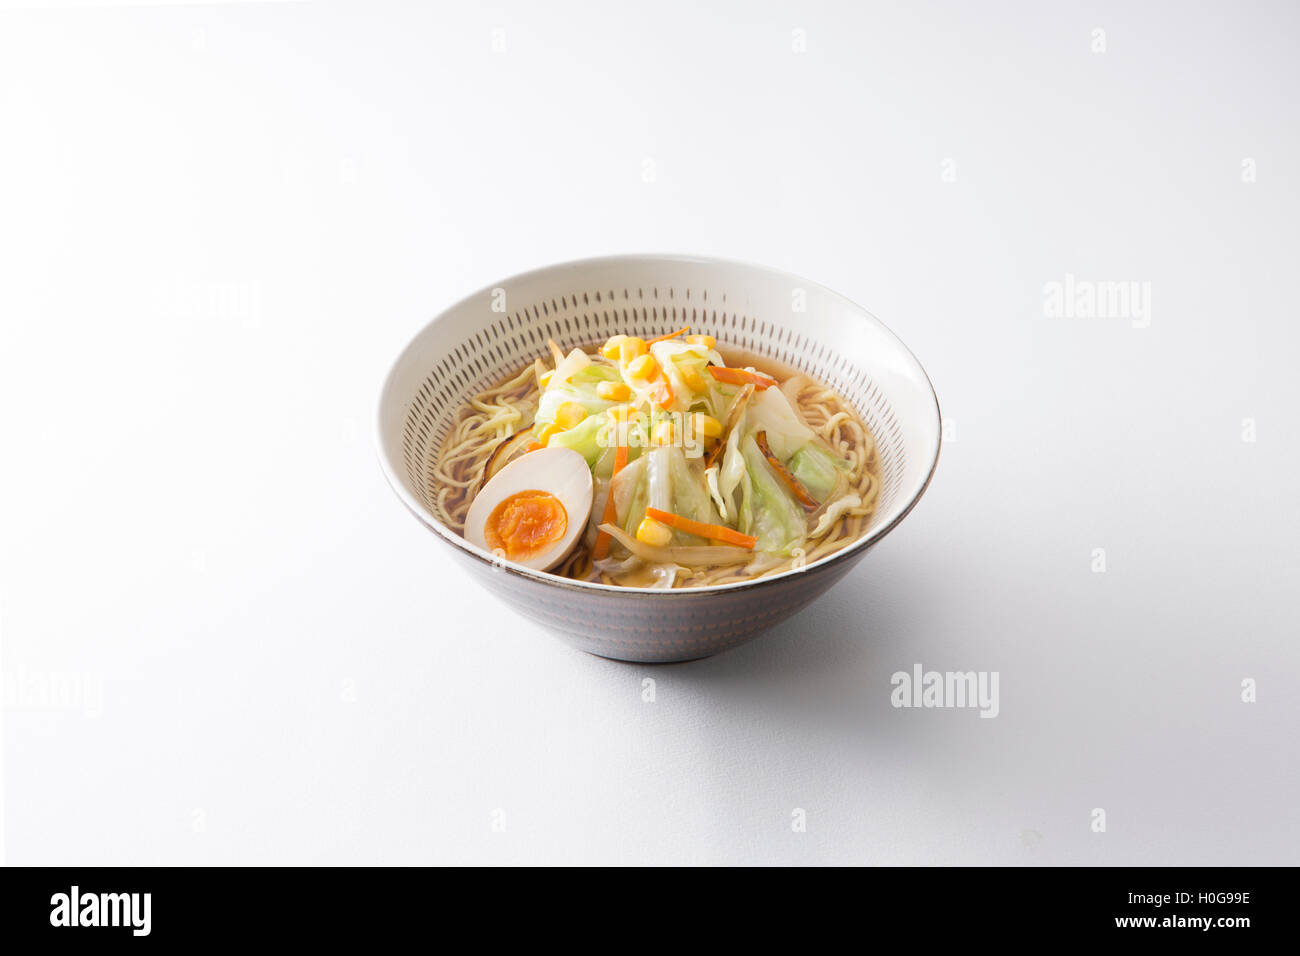 Japanese Koishiwara grilled ramen bowl with egg, cabbage, noodle and corn on white background - Stock Image